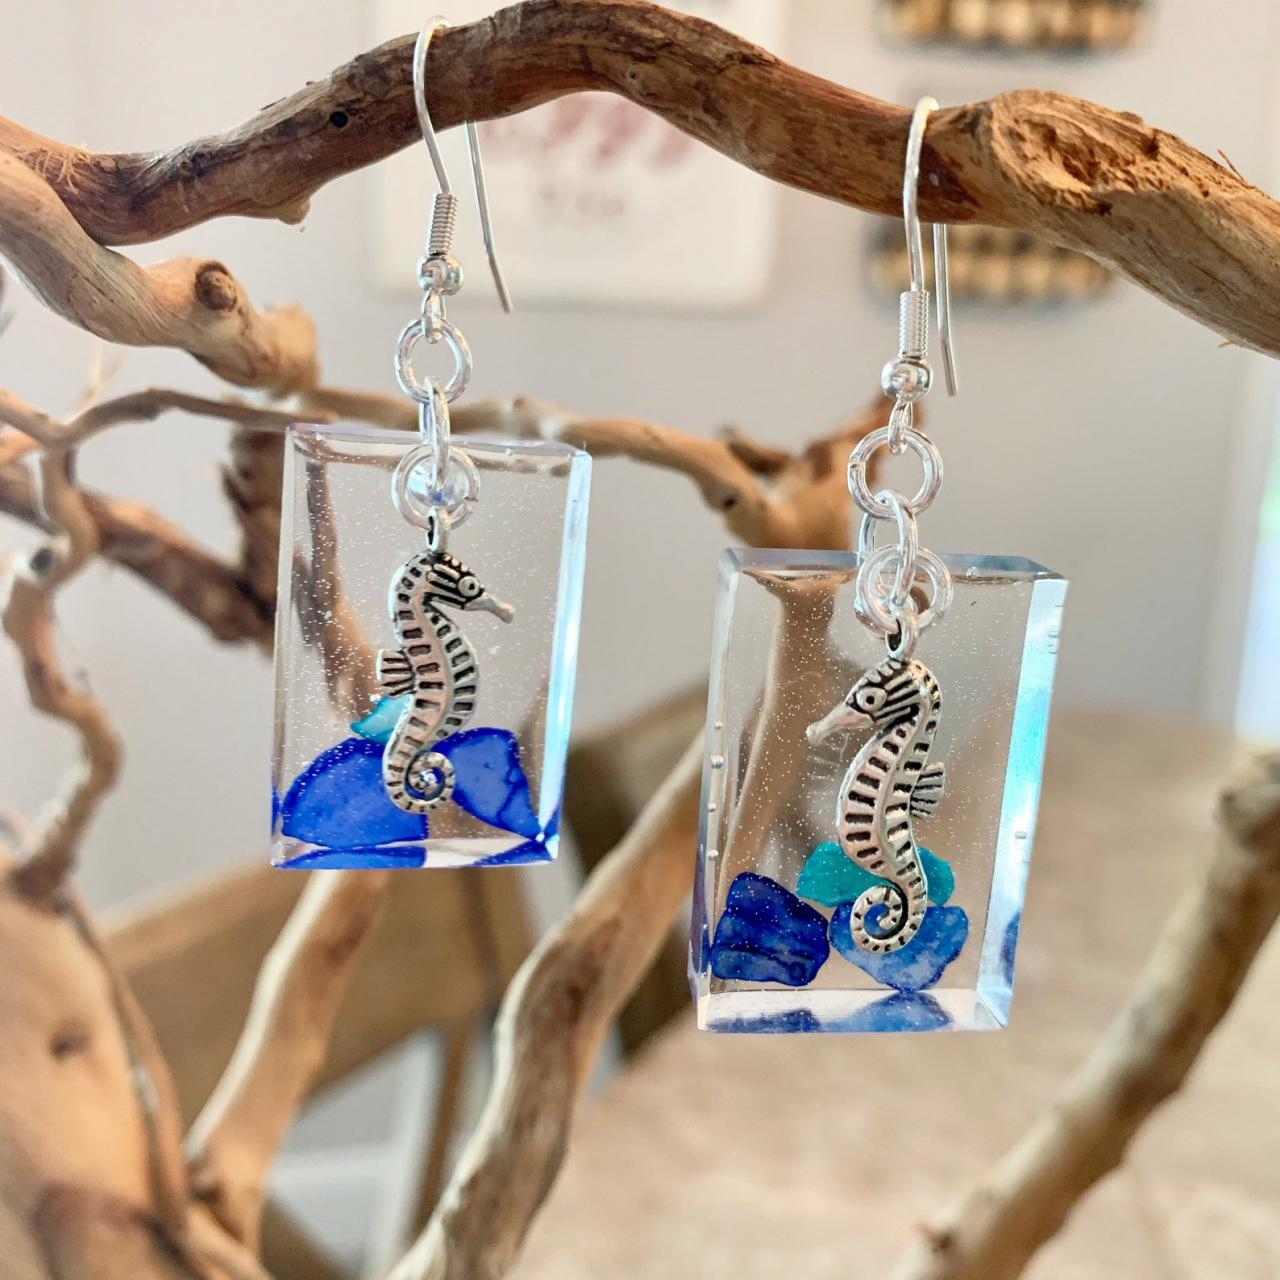 Seahorse earrings,resin art earrings,crushed shell earrings,beach jewelry, jewelry for women,gift for beach lover,ocean creature jewelry,